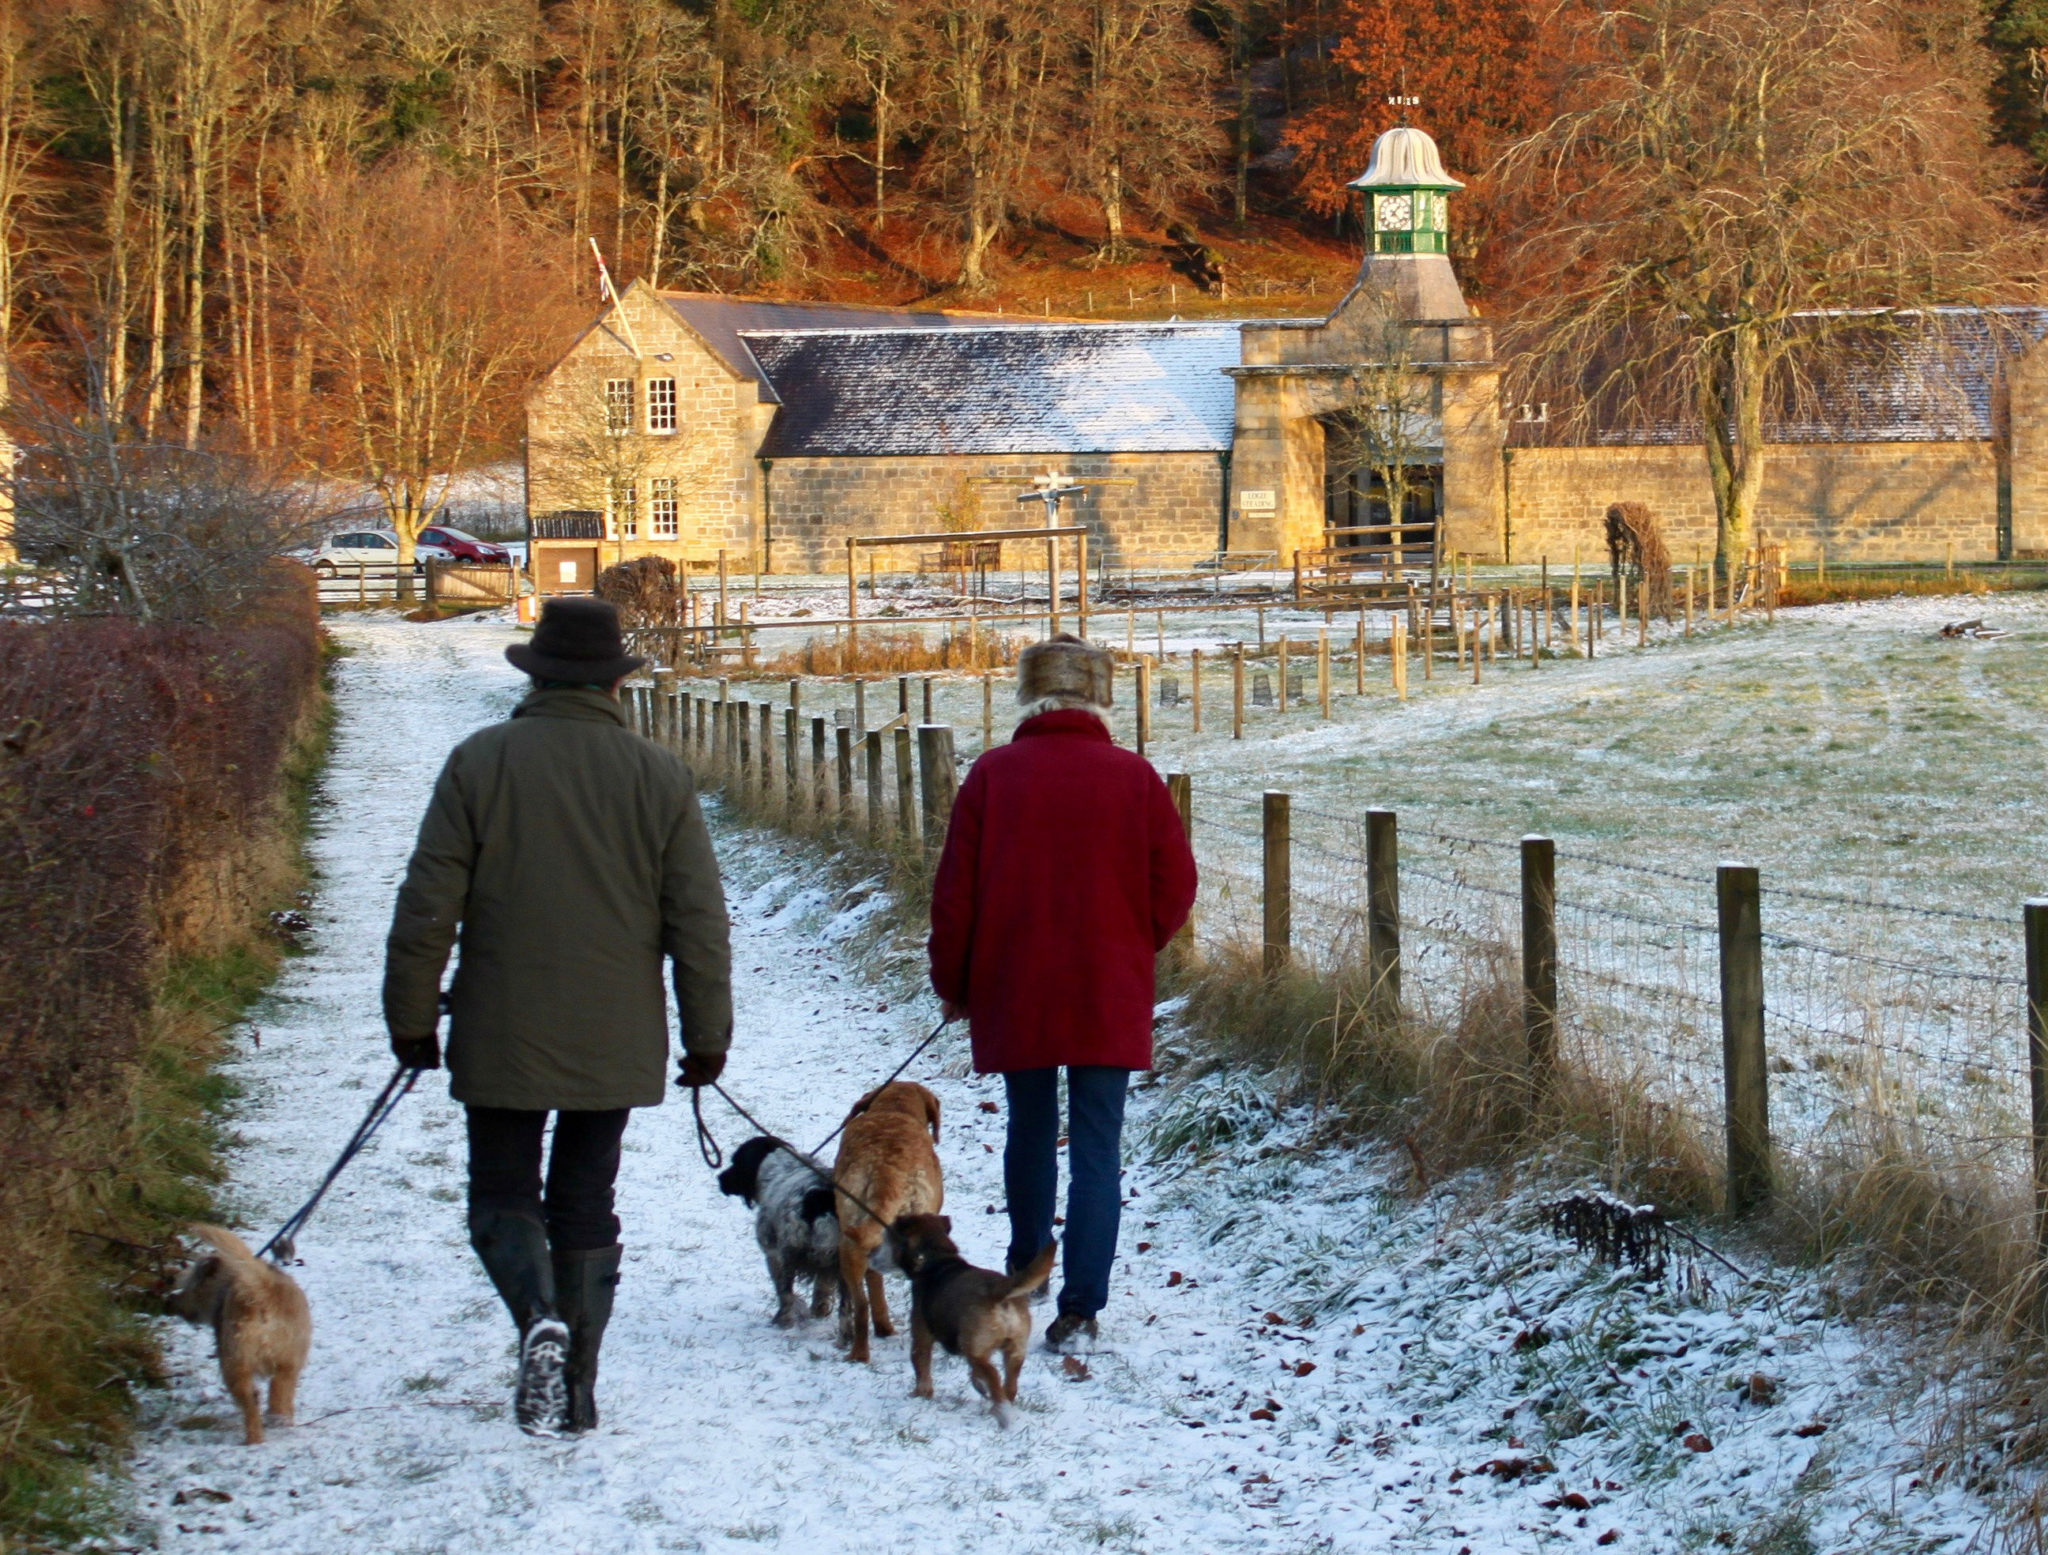 Dog walking in the snow at Logie Steading